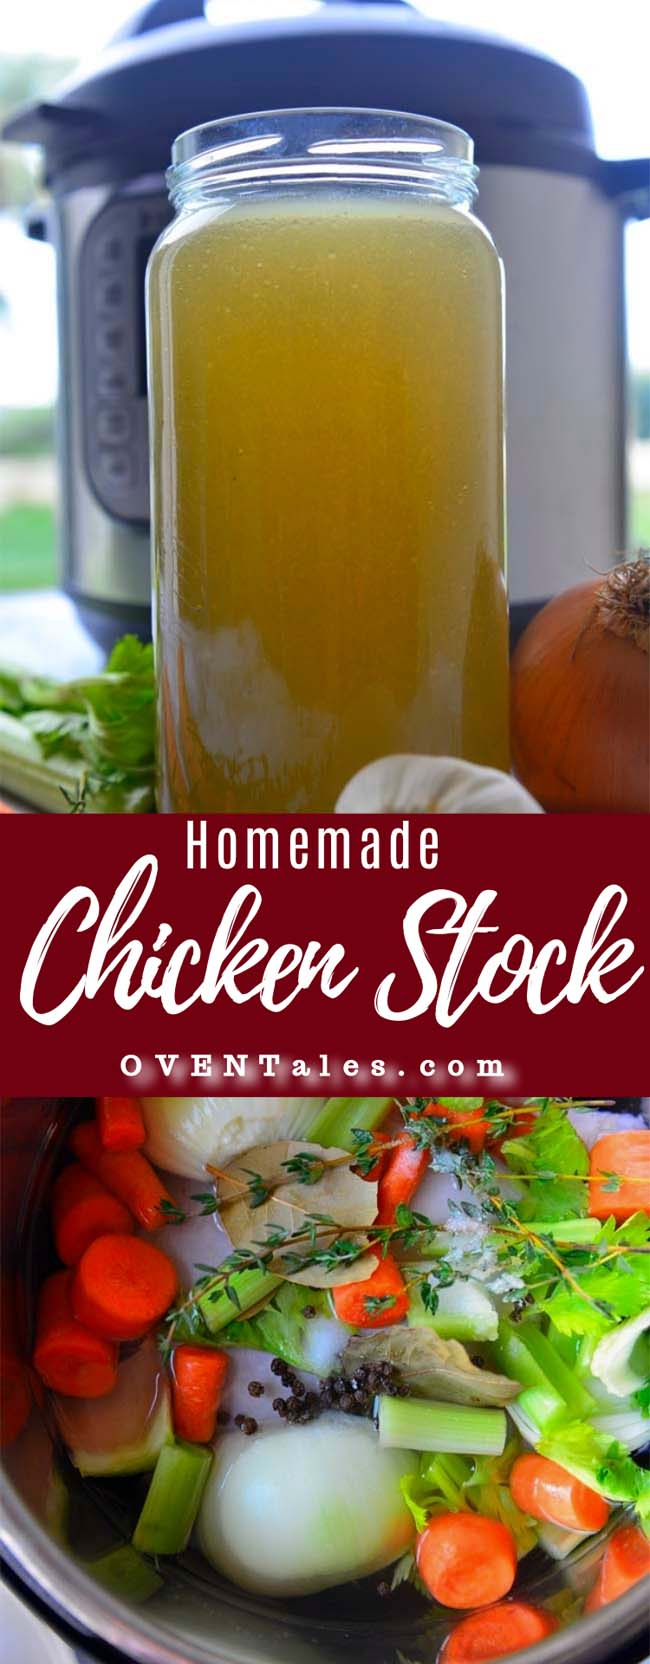 Home made chicken stock - easily made in a pressure cooker